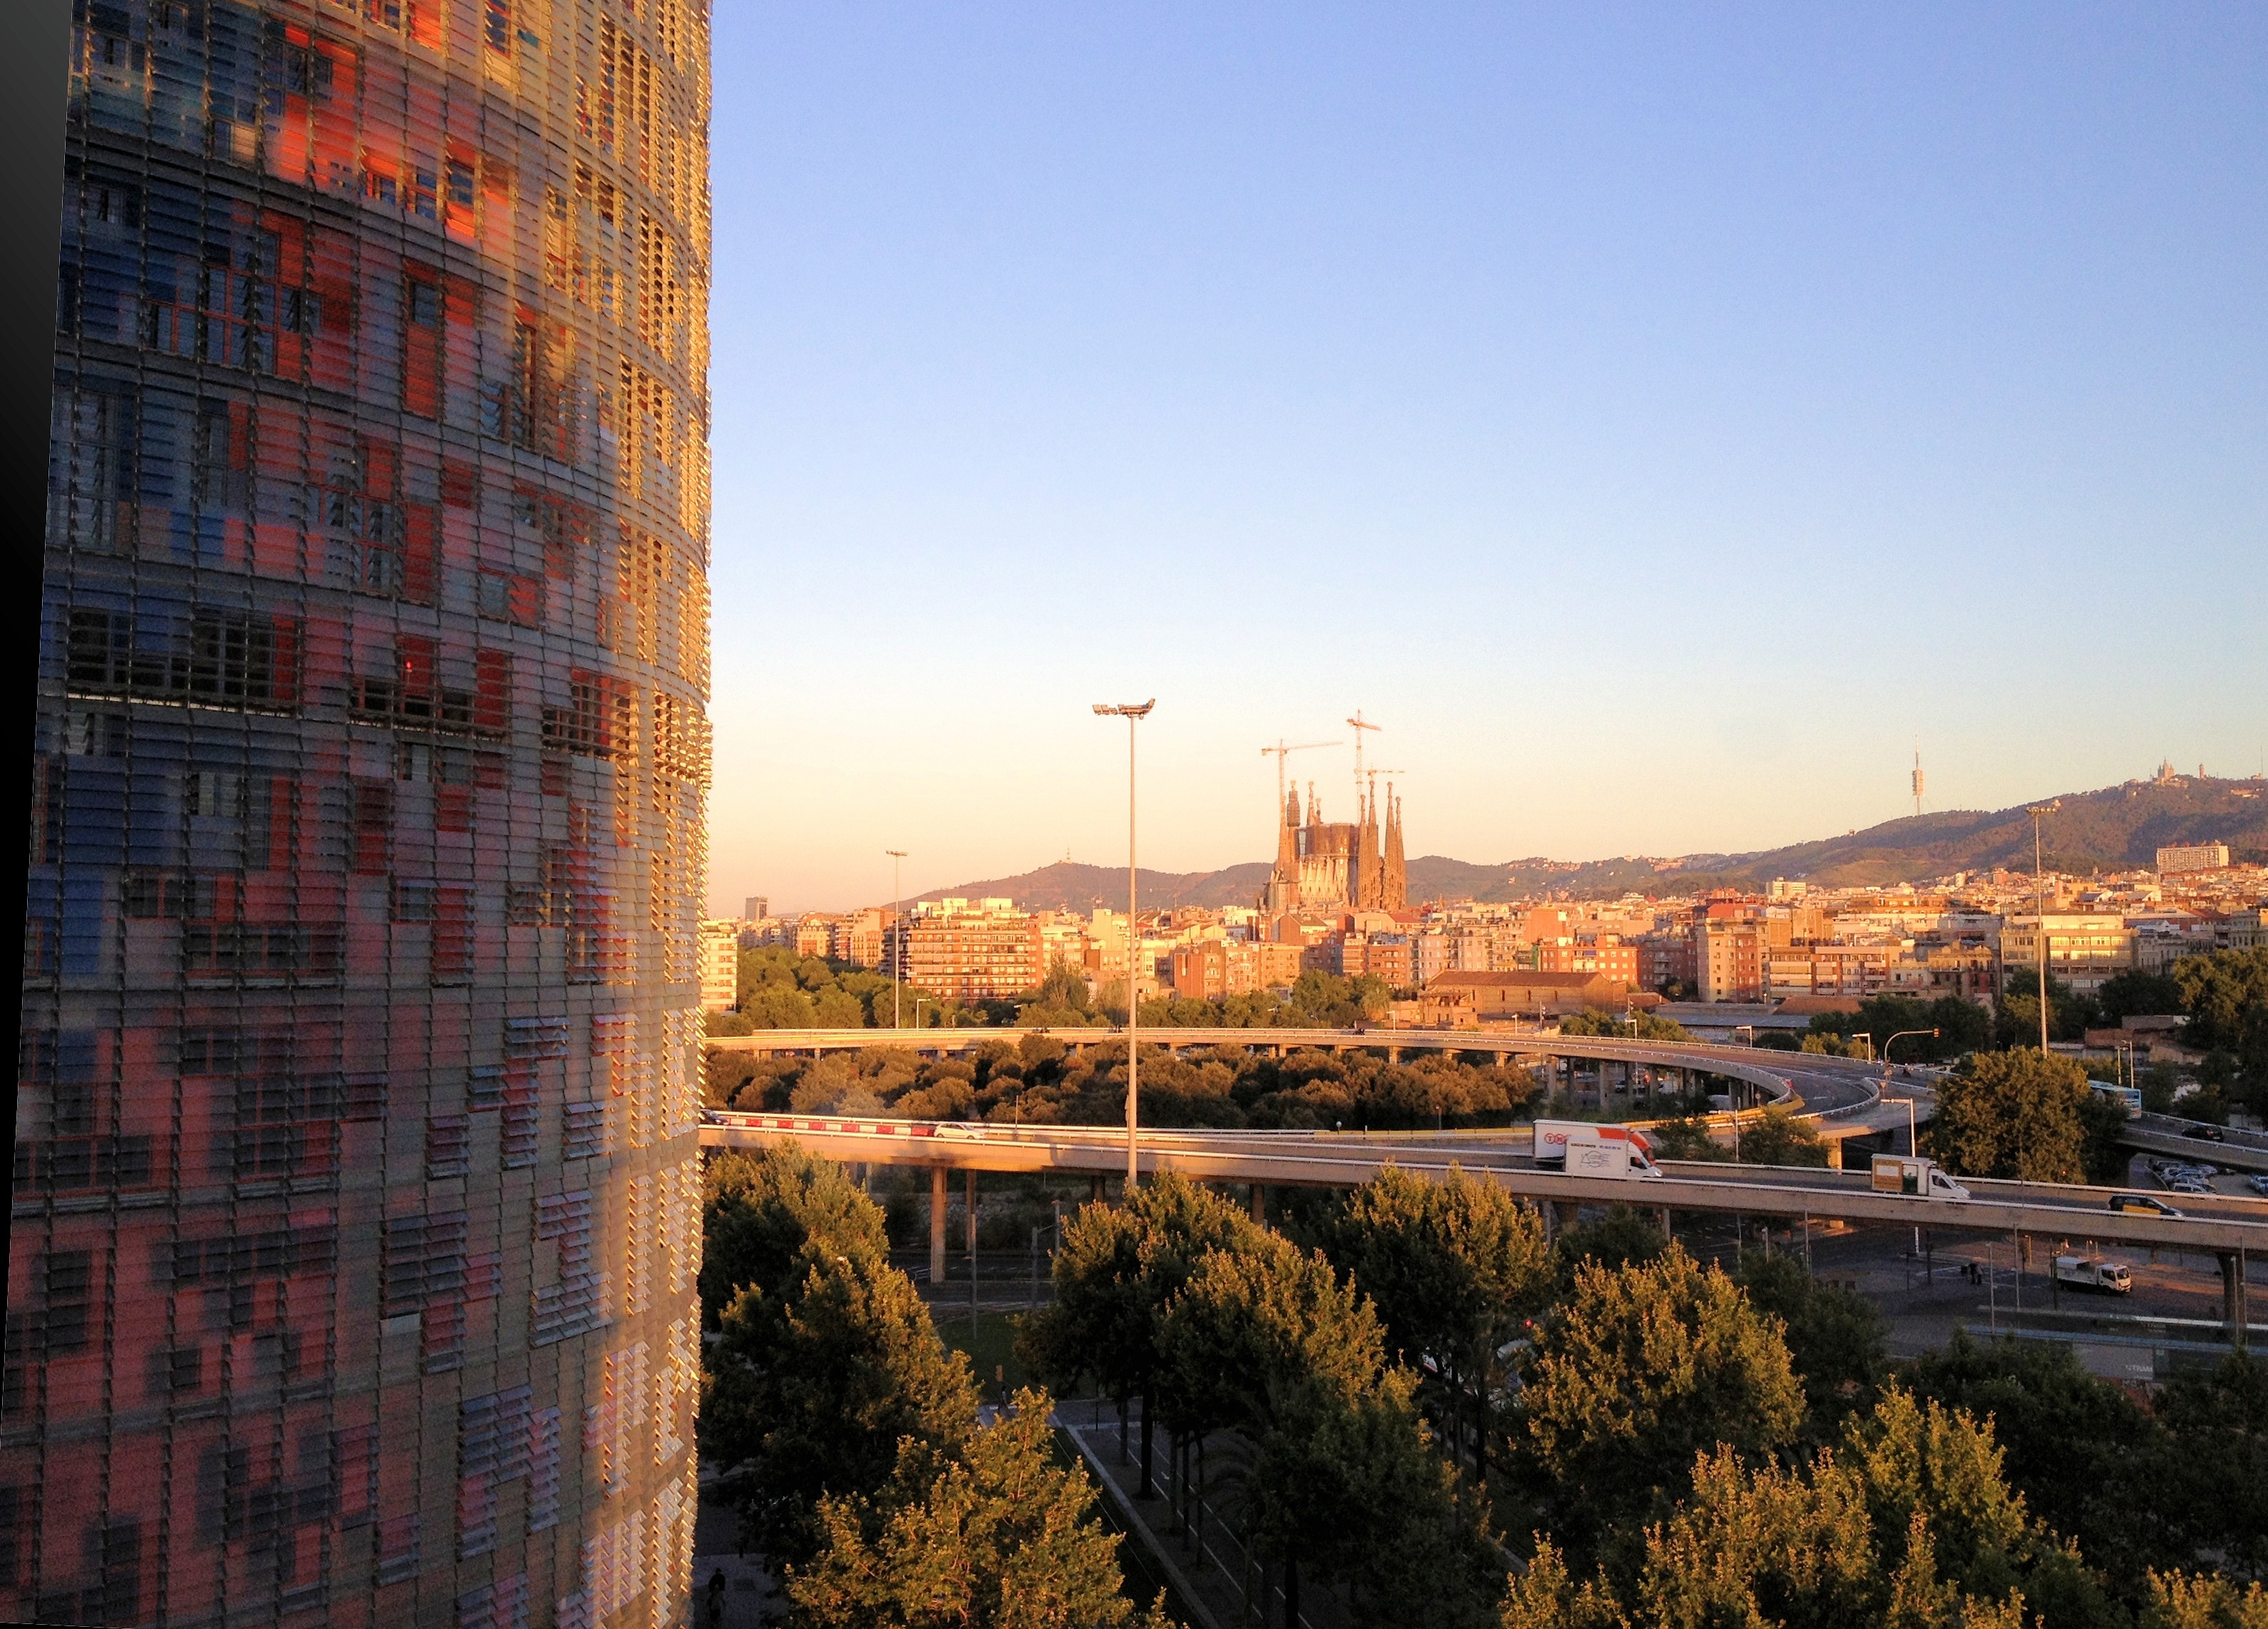 Admiring the Sagrada Familia from Silken Diagonal Hotel